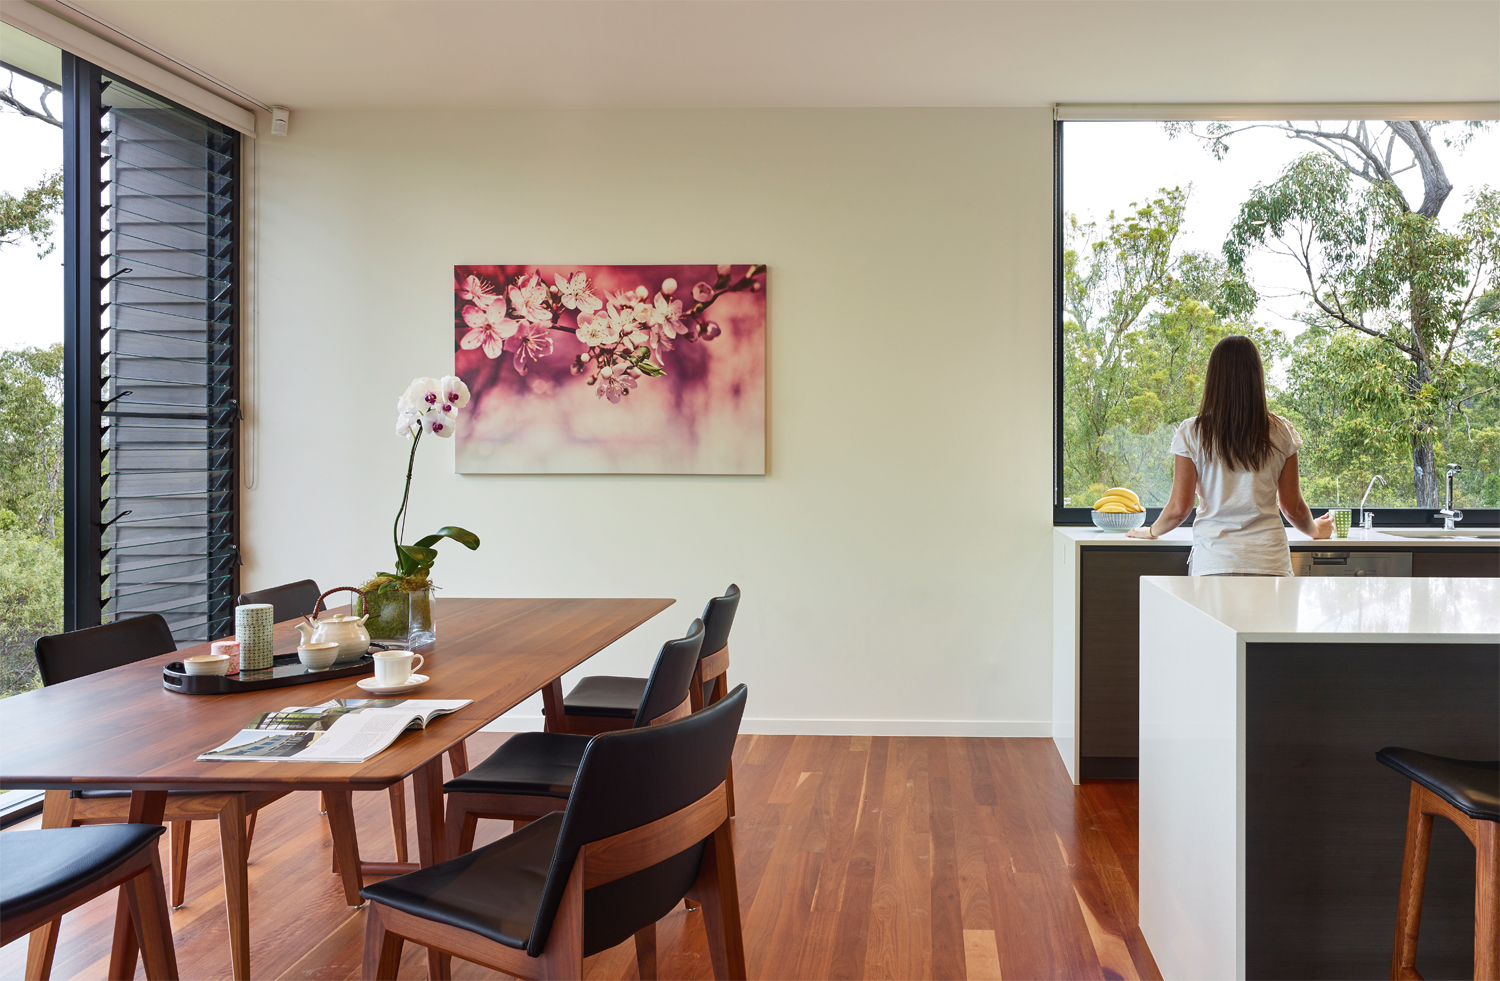 Grand Designs Australia: High Flyer - Architects' masterpiece - dining room